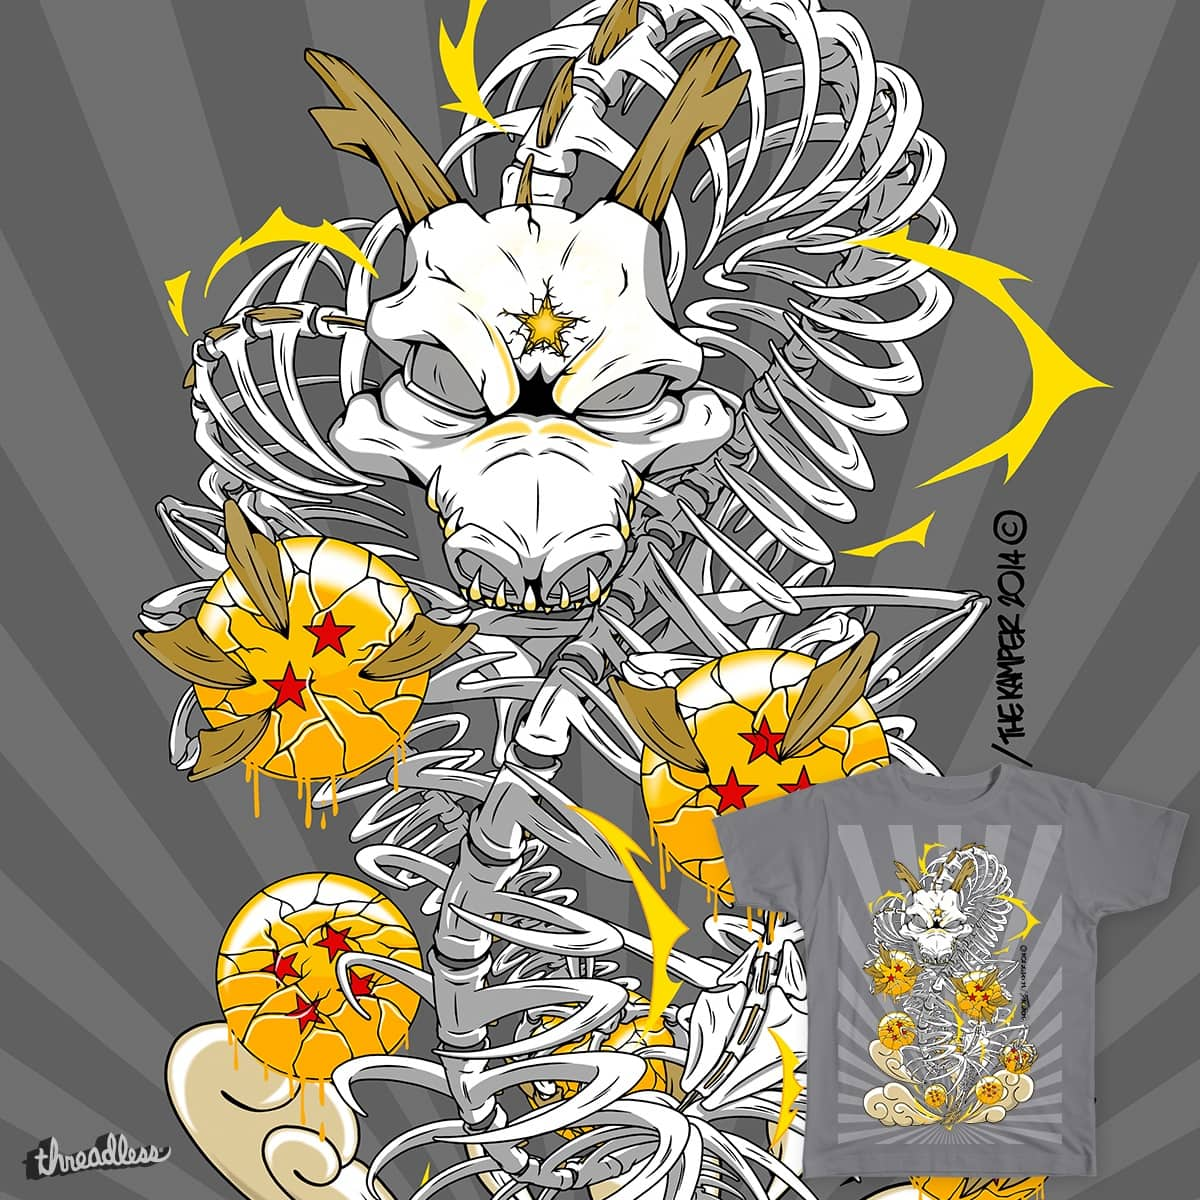 ShenBones by THE.KAMPER on Threadless